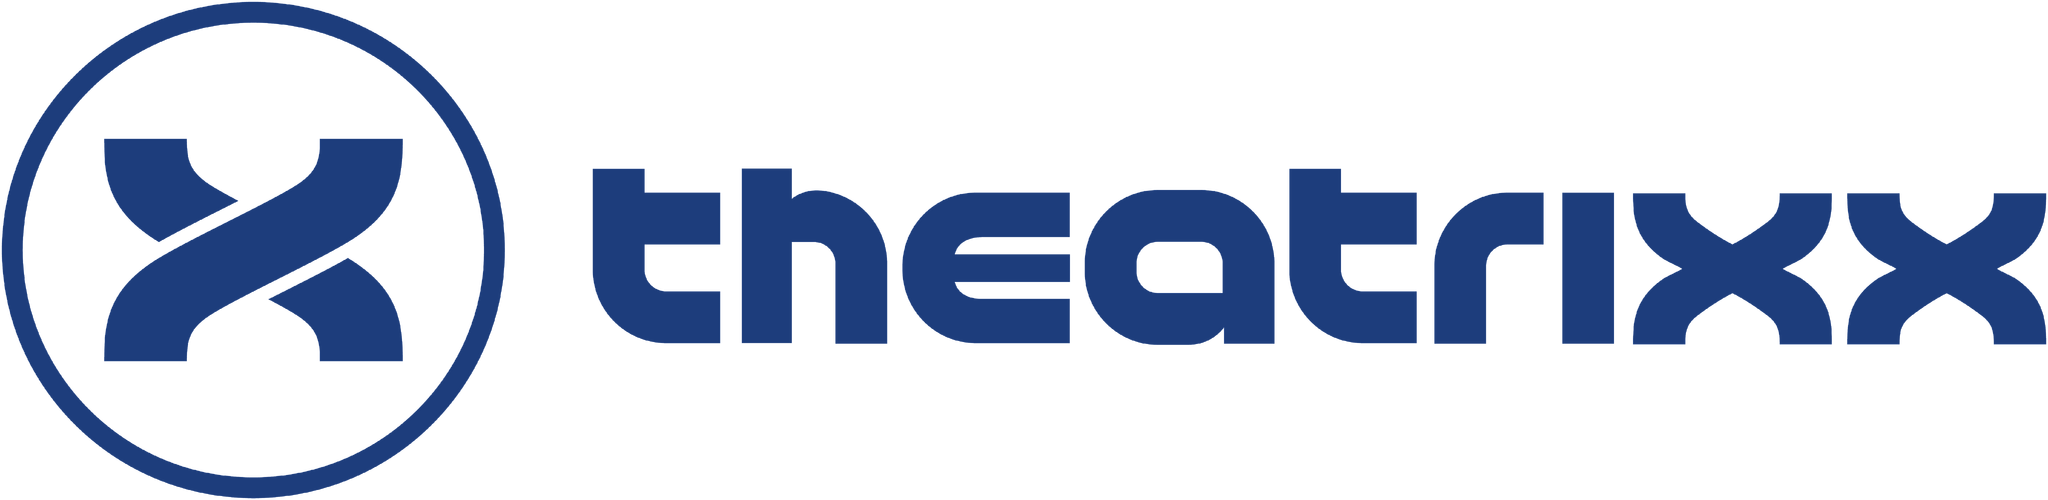 Theatrixx Technologies Inc.